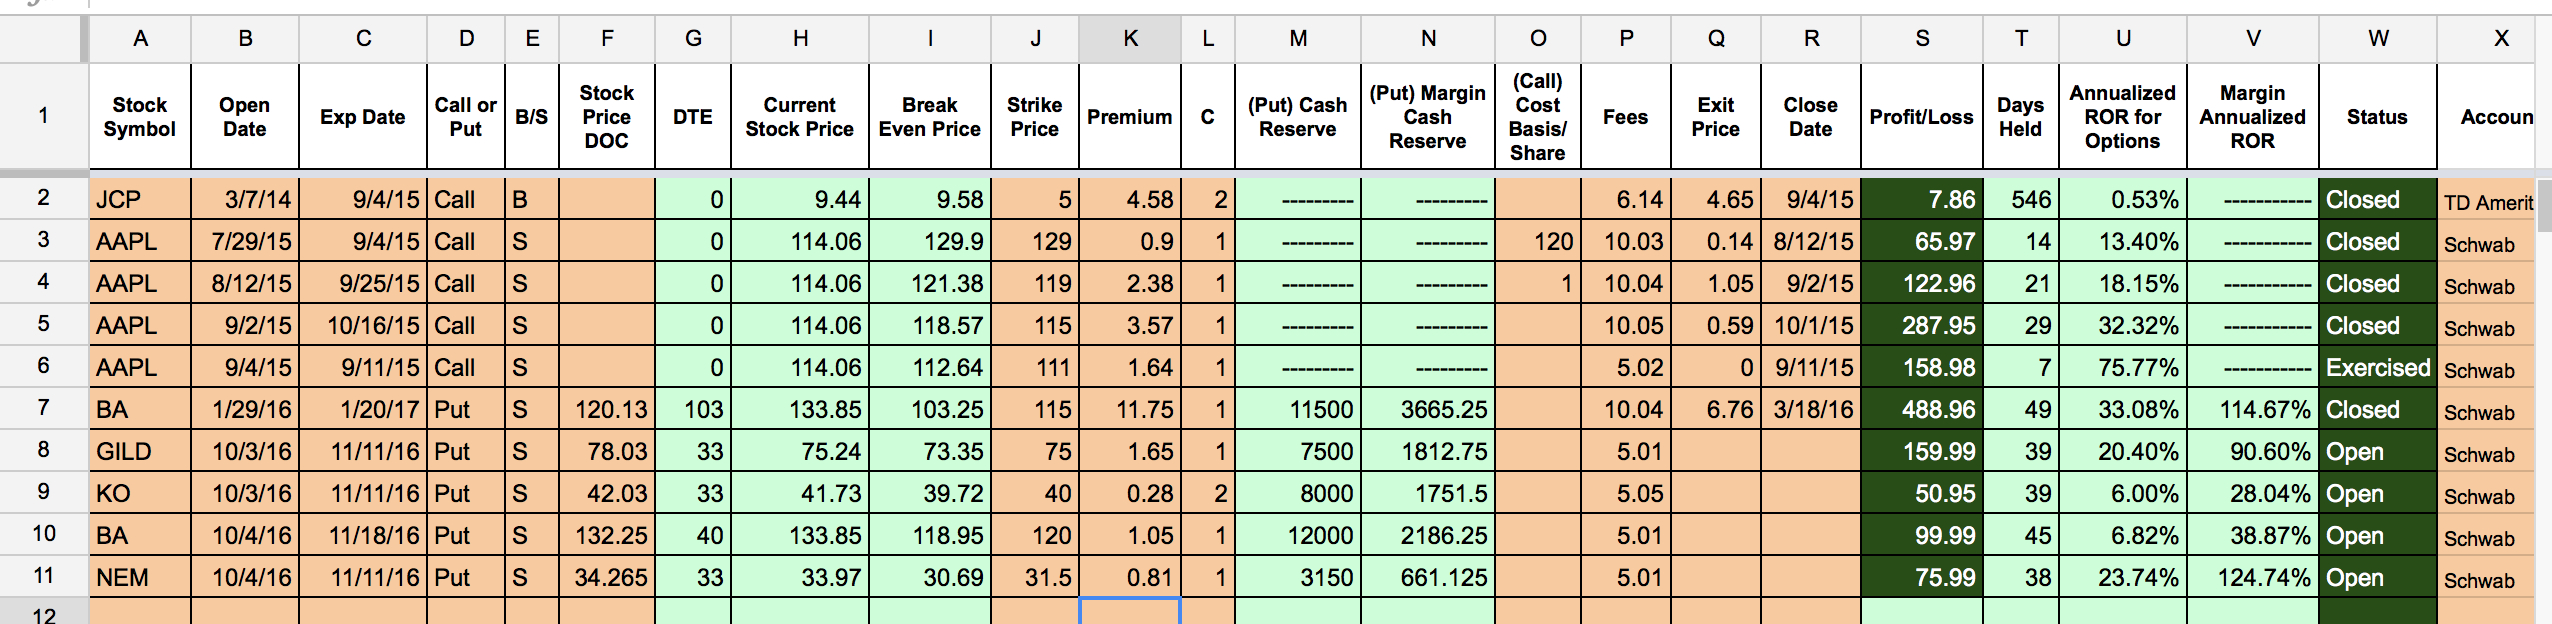 Make Money Selling Excel Spreadsheets For Options Tracker Spreadsheet – Two Investing